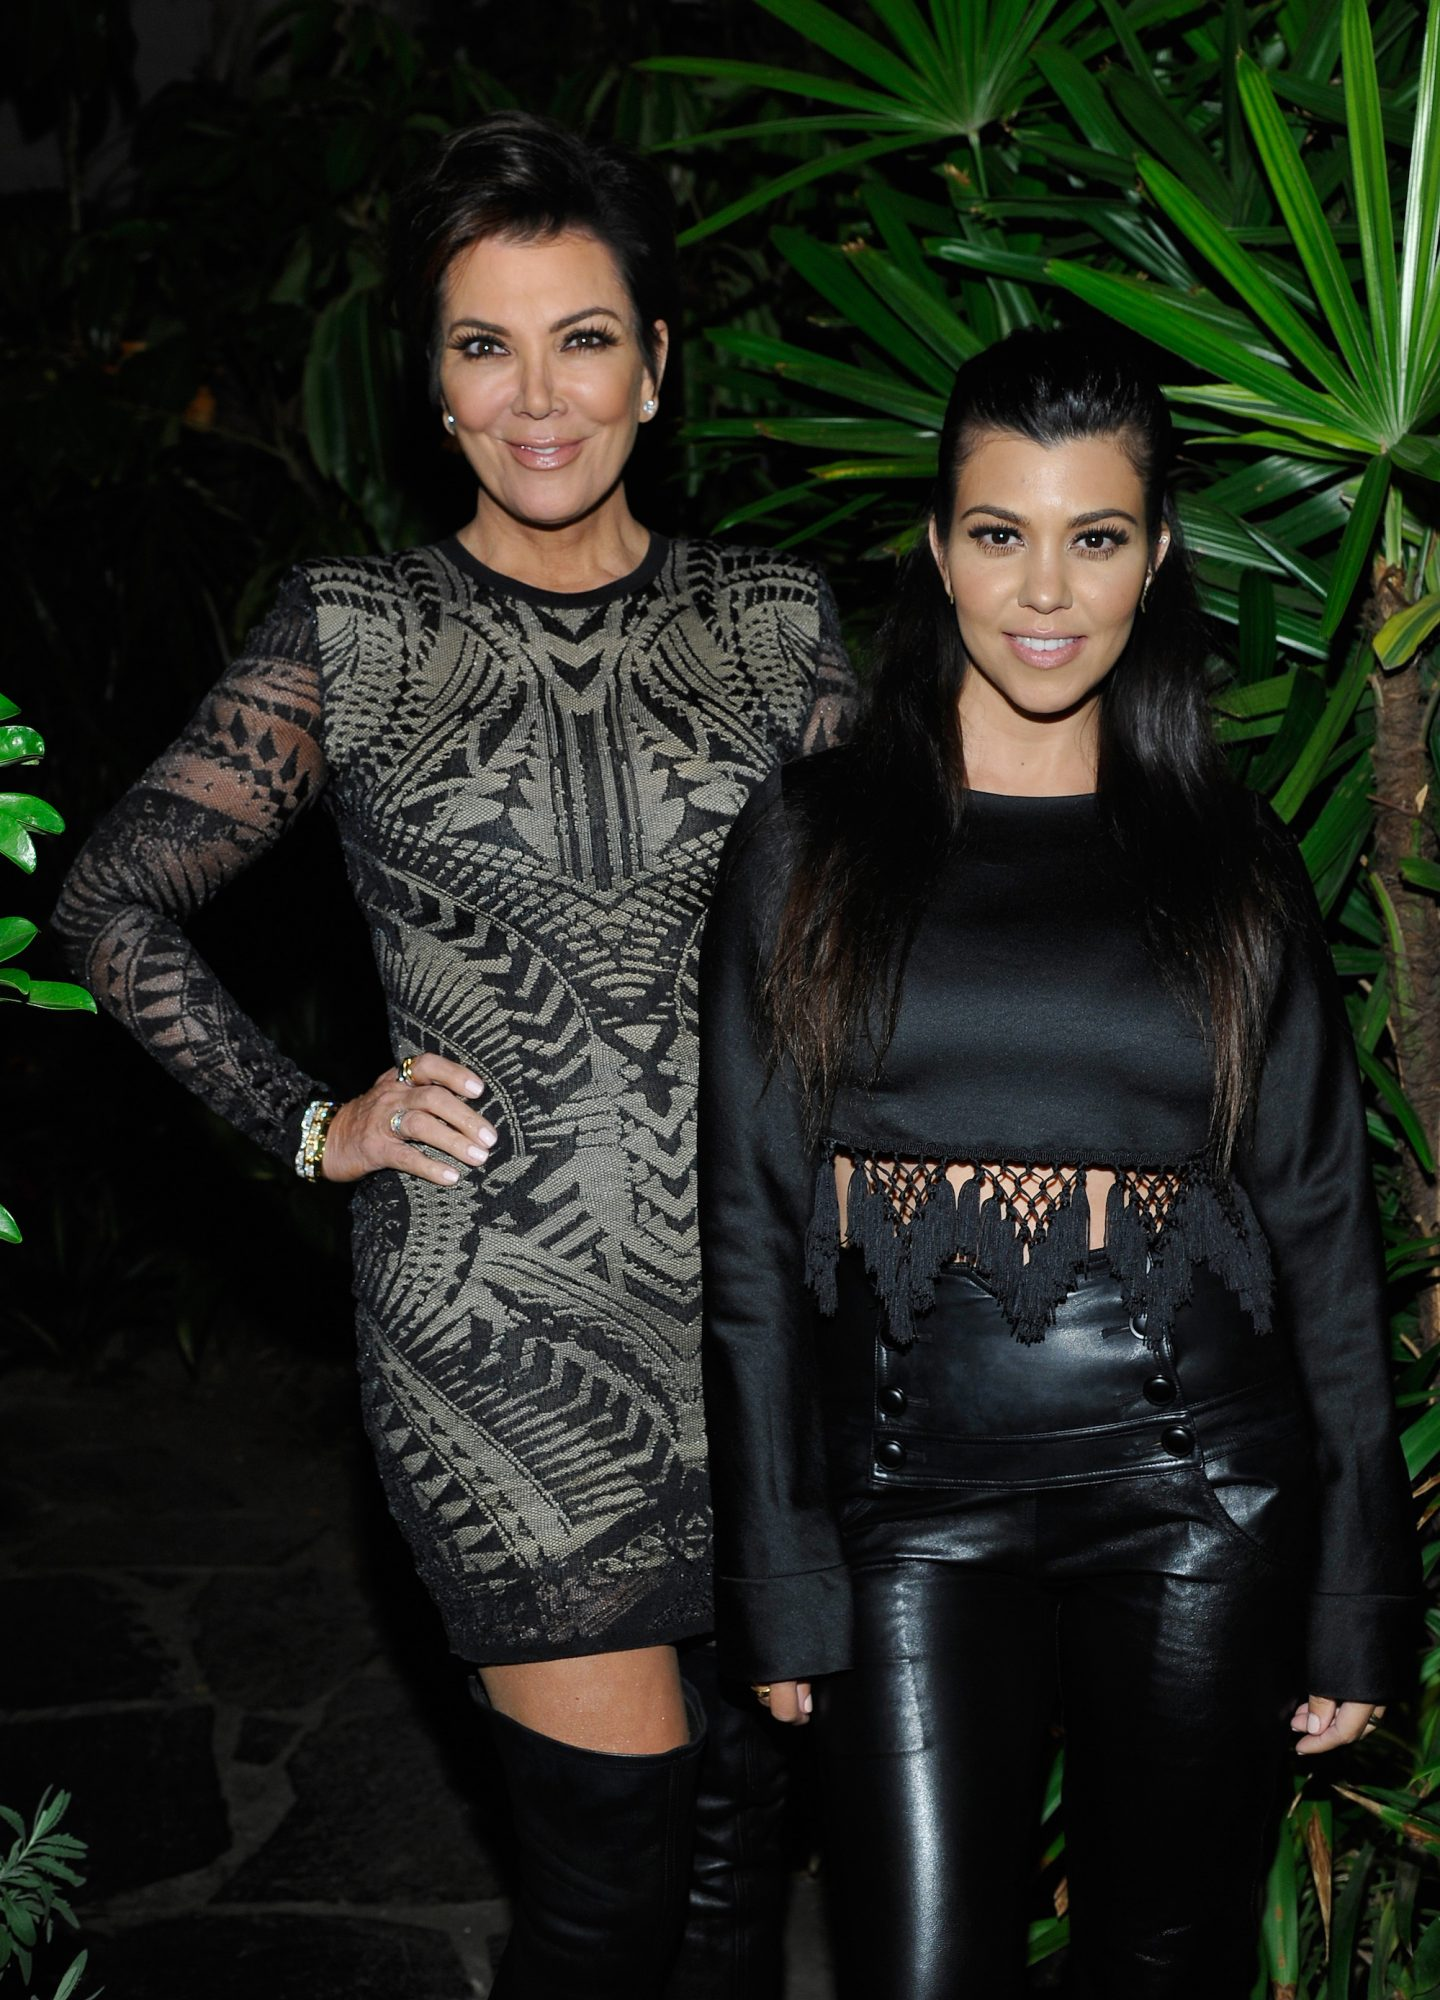 Kourtney Kardashian and Kris Jenner lead